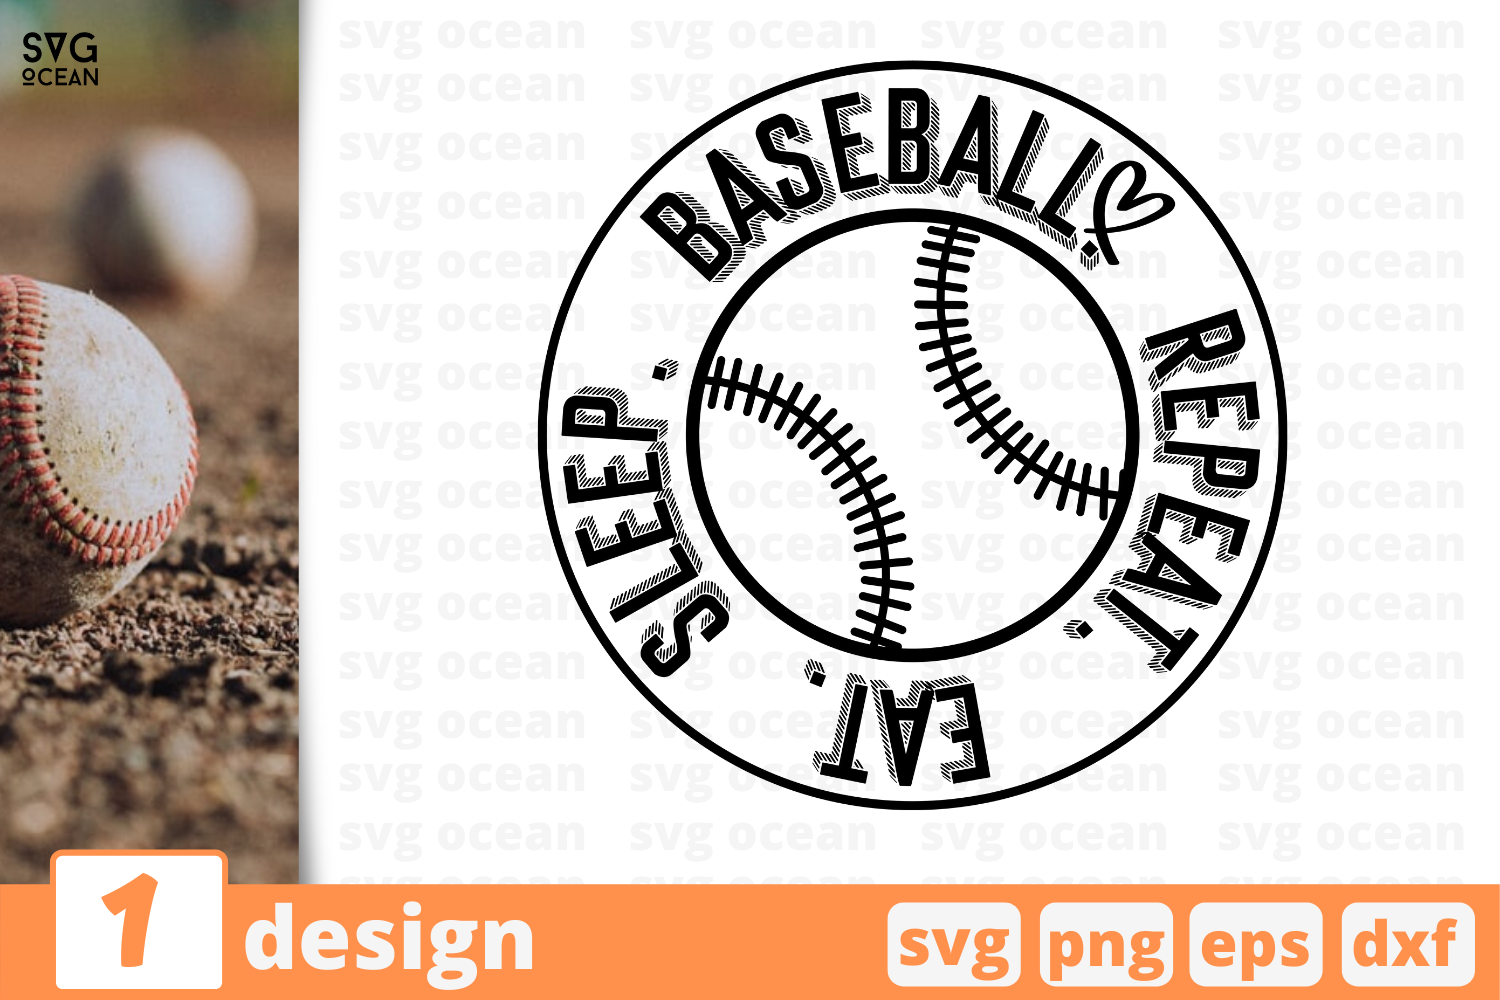 Download Free 1 Baseball Sleep Eat Repeat Svg Cricut Graphic By Svgocean for Cricut Explore, Silhouette and other cutting machines.